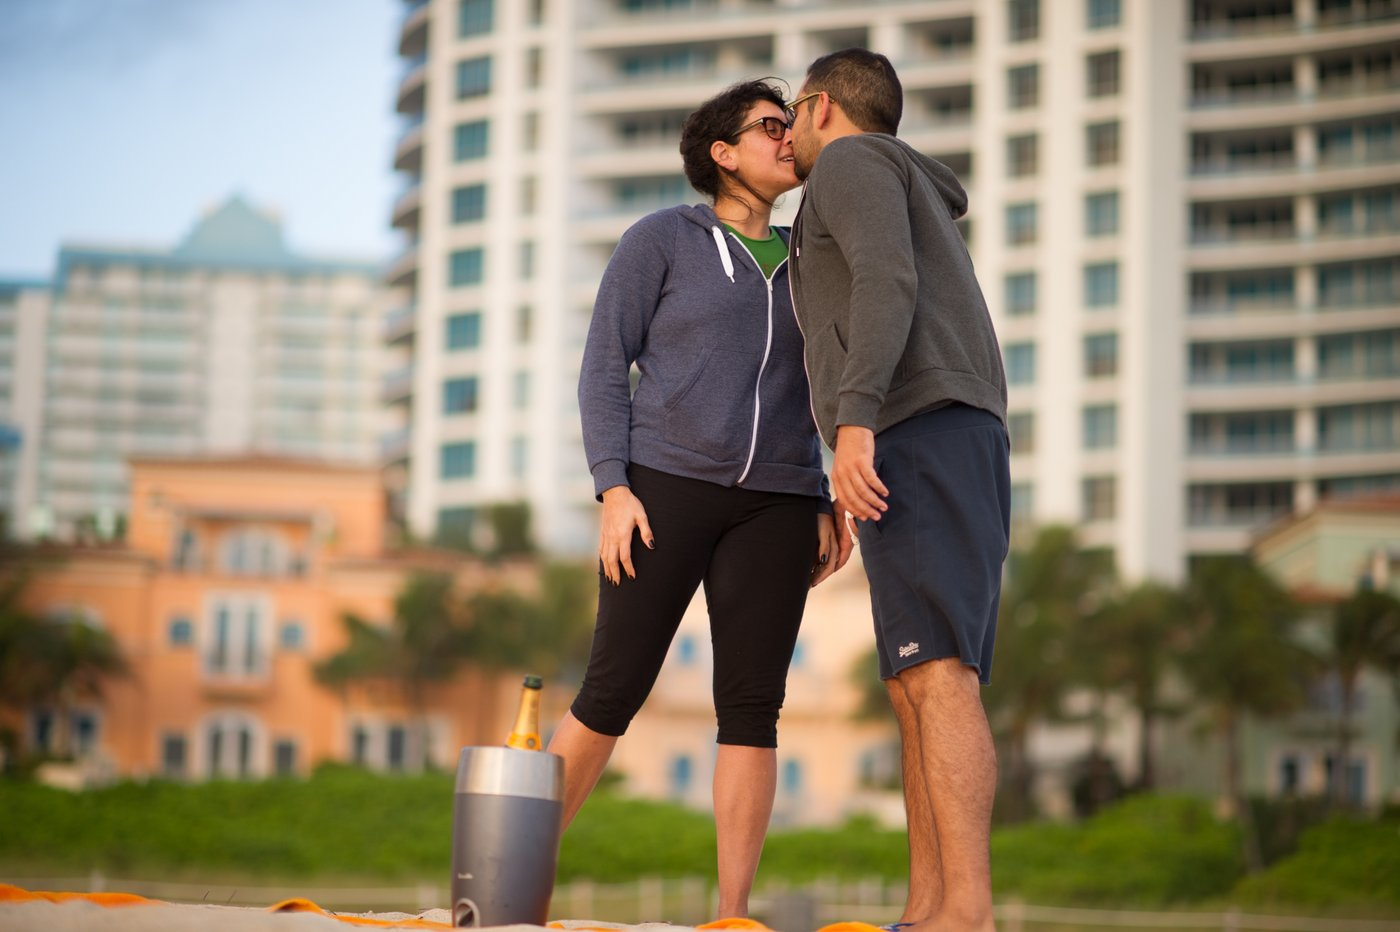 Surprise Engagement Proposal on Miami Beach | Miami, Florida, Miami Wedding Photographers | Häring Photography, Indian Wedding Photographer in Florida, Best Muslim, Hindu - South East Asian Wedding Photographers